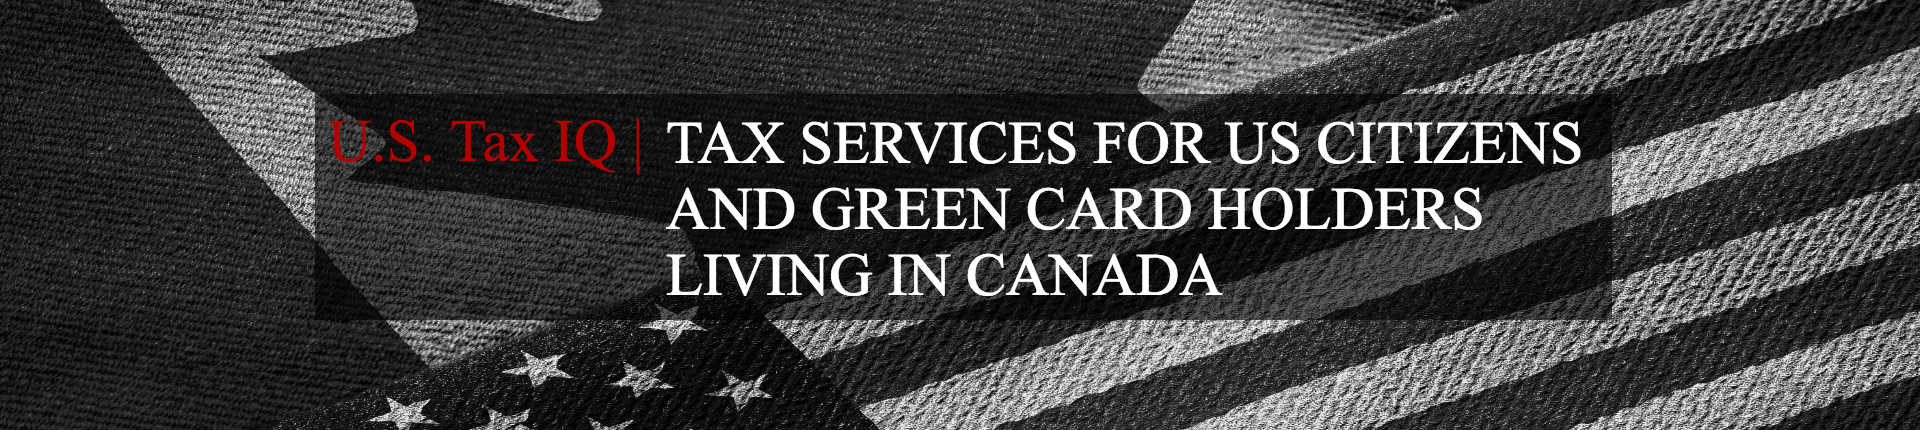 Tax services us citizens canada planning compliance consulting tax services us citizens canada platinumwayz